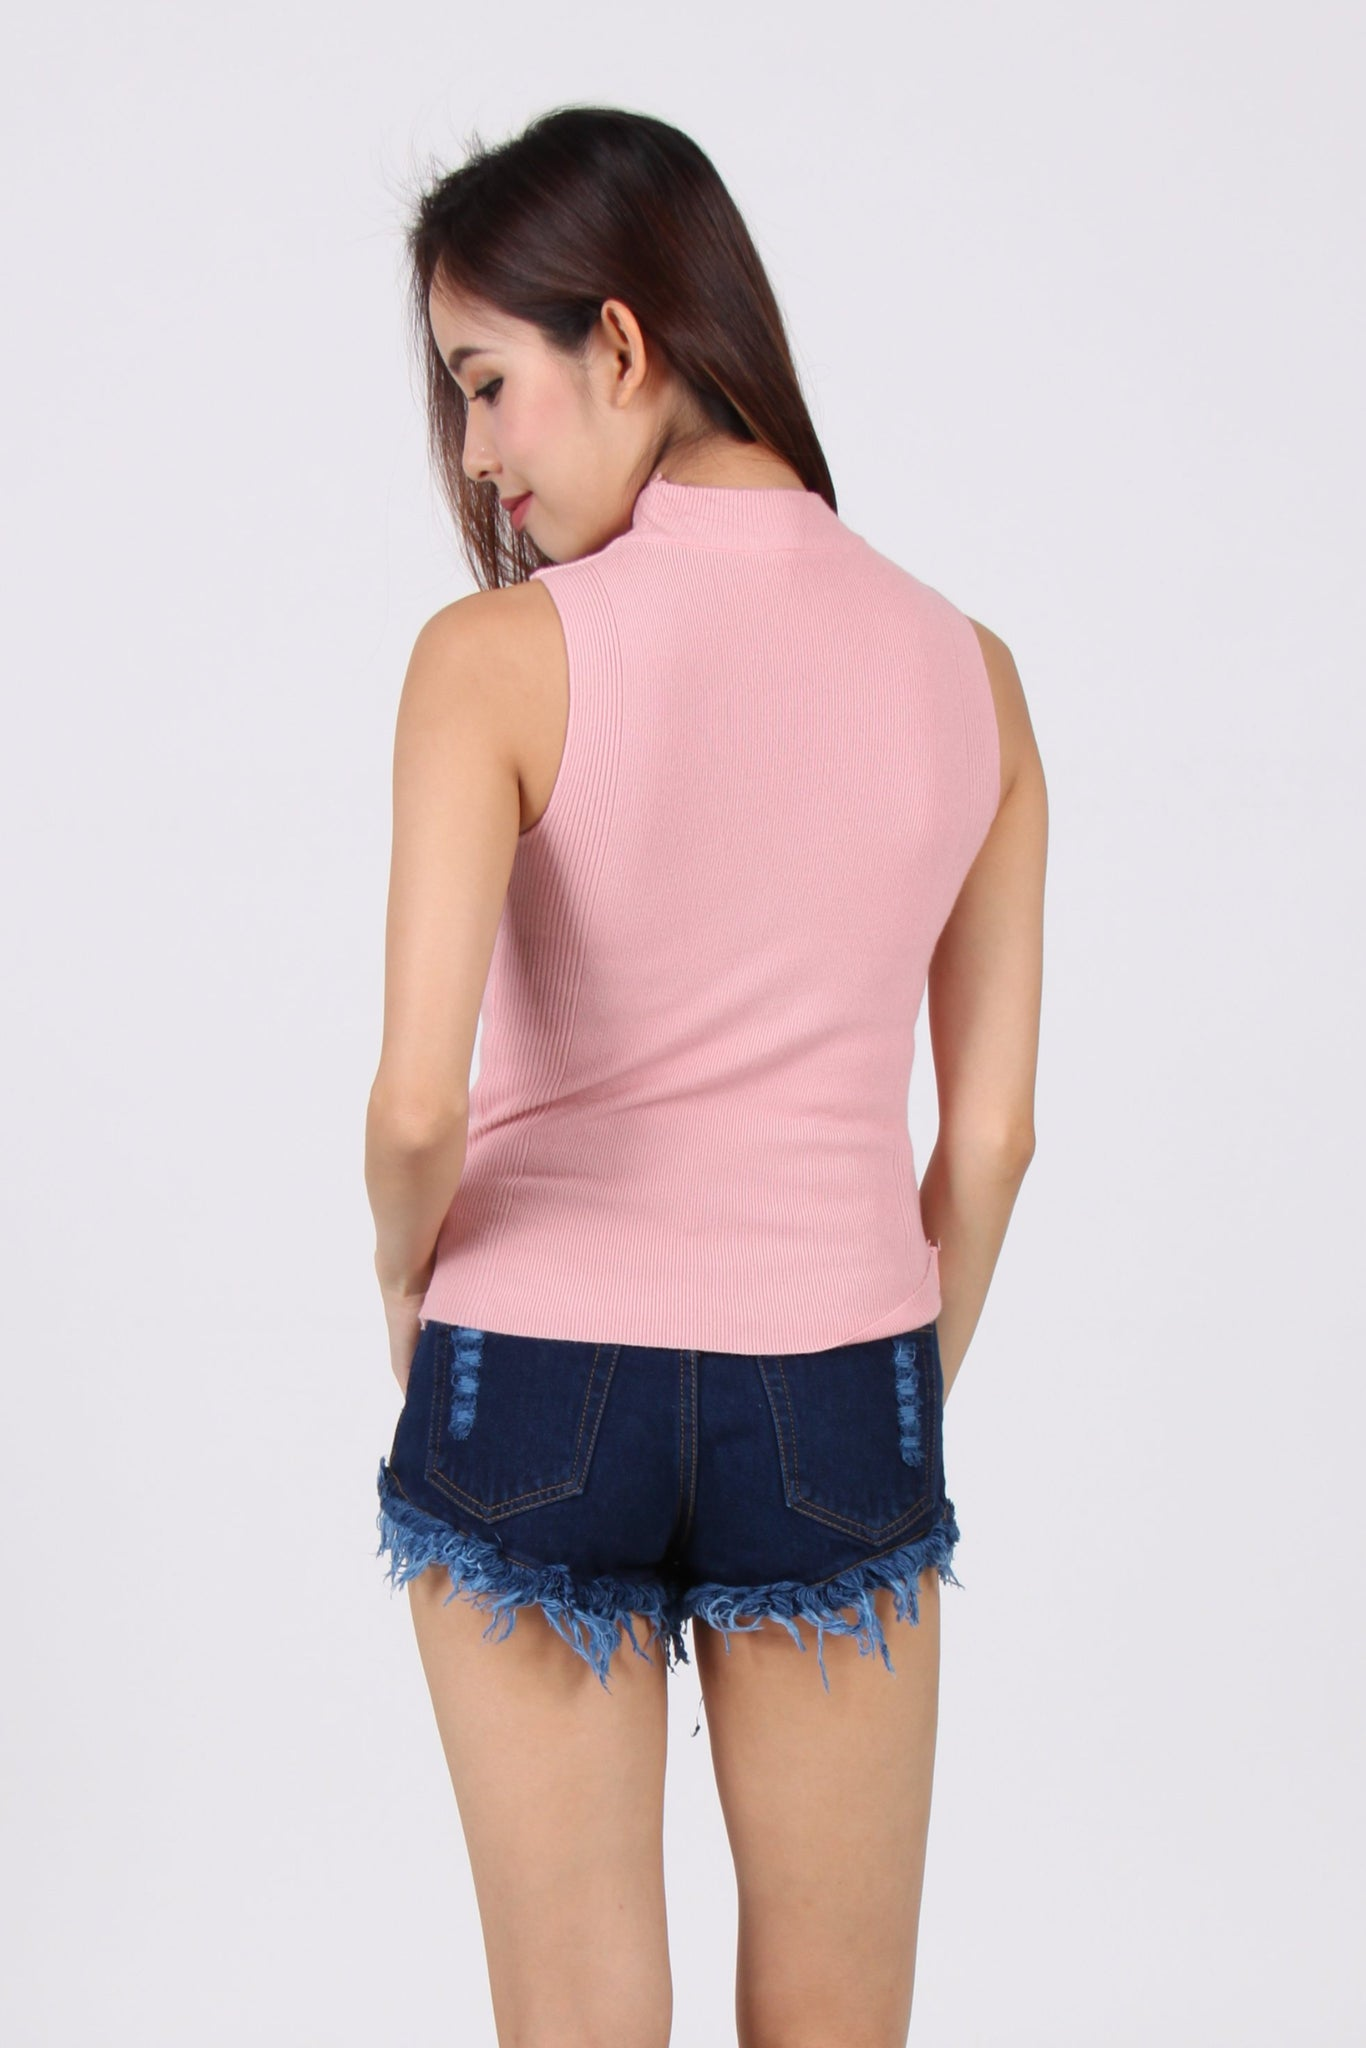 Knit High Neck V Sleeveless Top in Pink